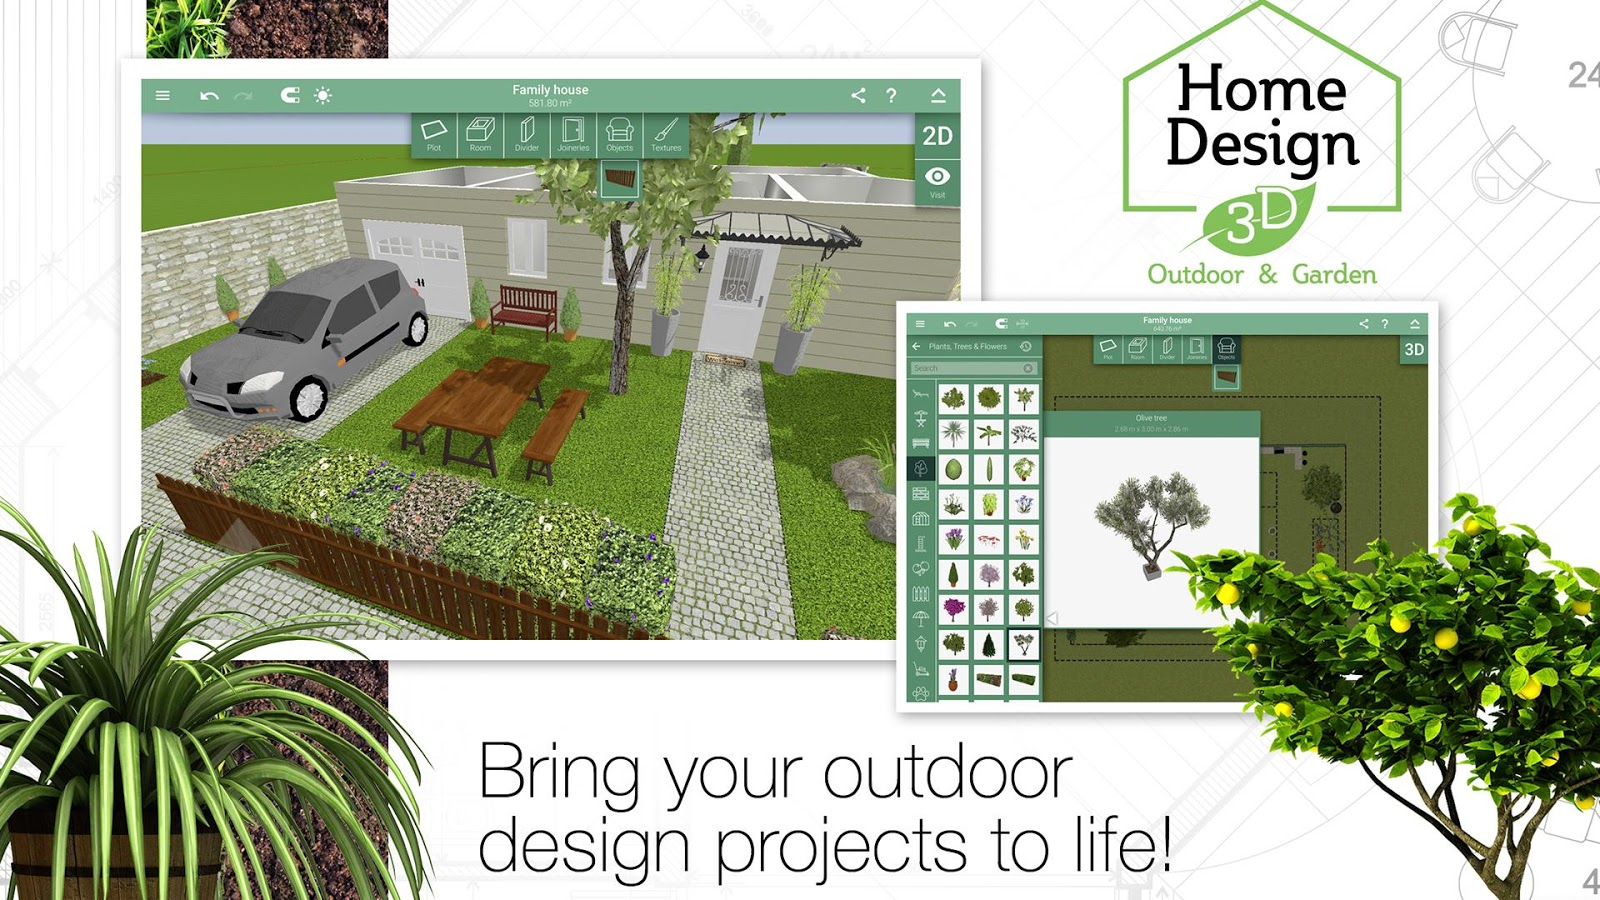 Home design 3d outdoor garden android apps on google play Design the outside of your house online